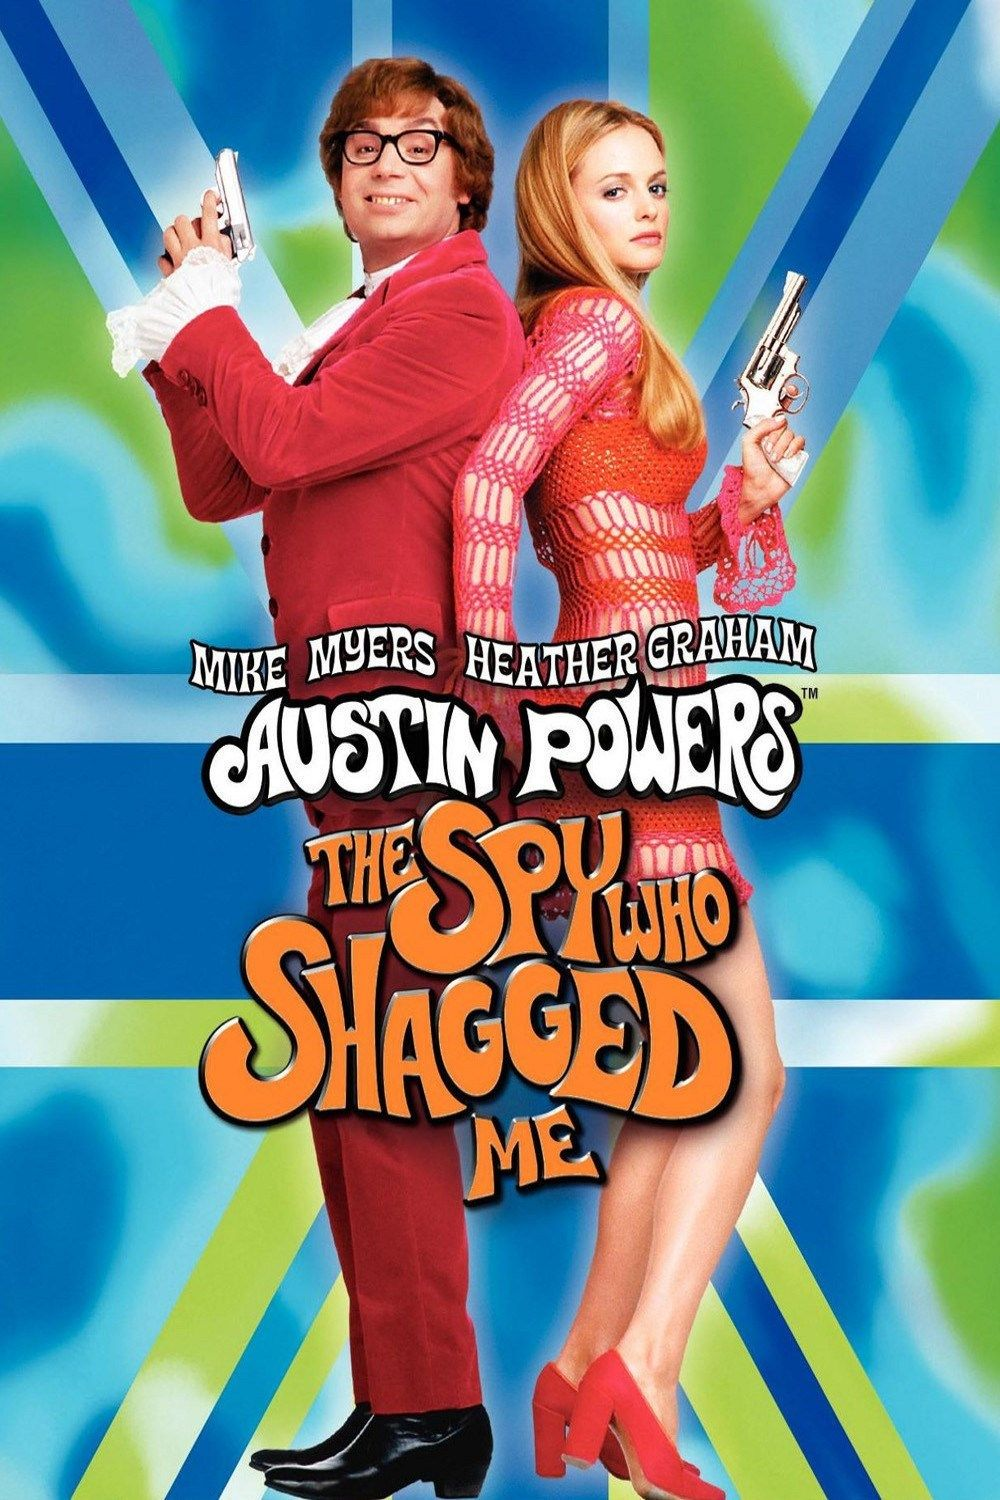 Austin Powers: The Spy Who Shagged Me - 1999. | Austin powers, Full movies  online free, Streaming movies